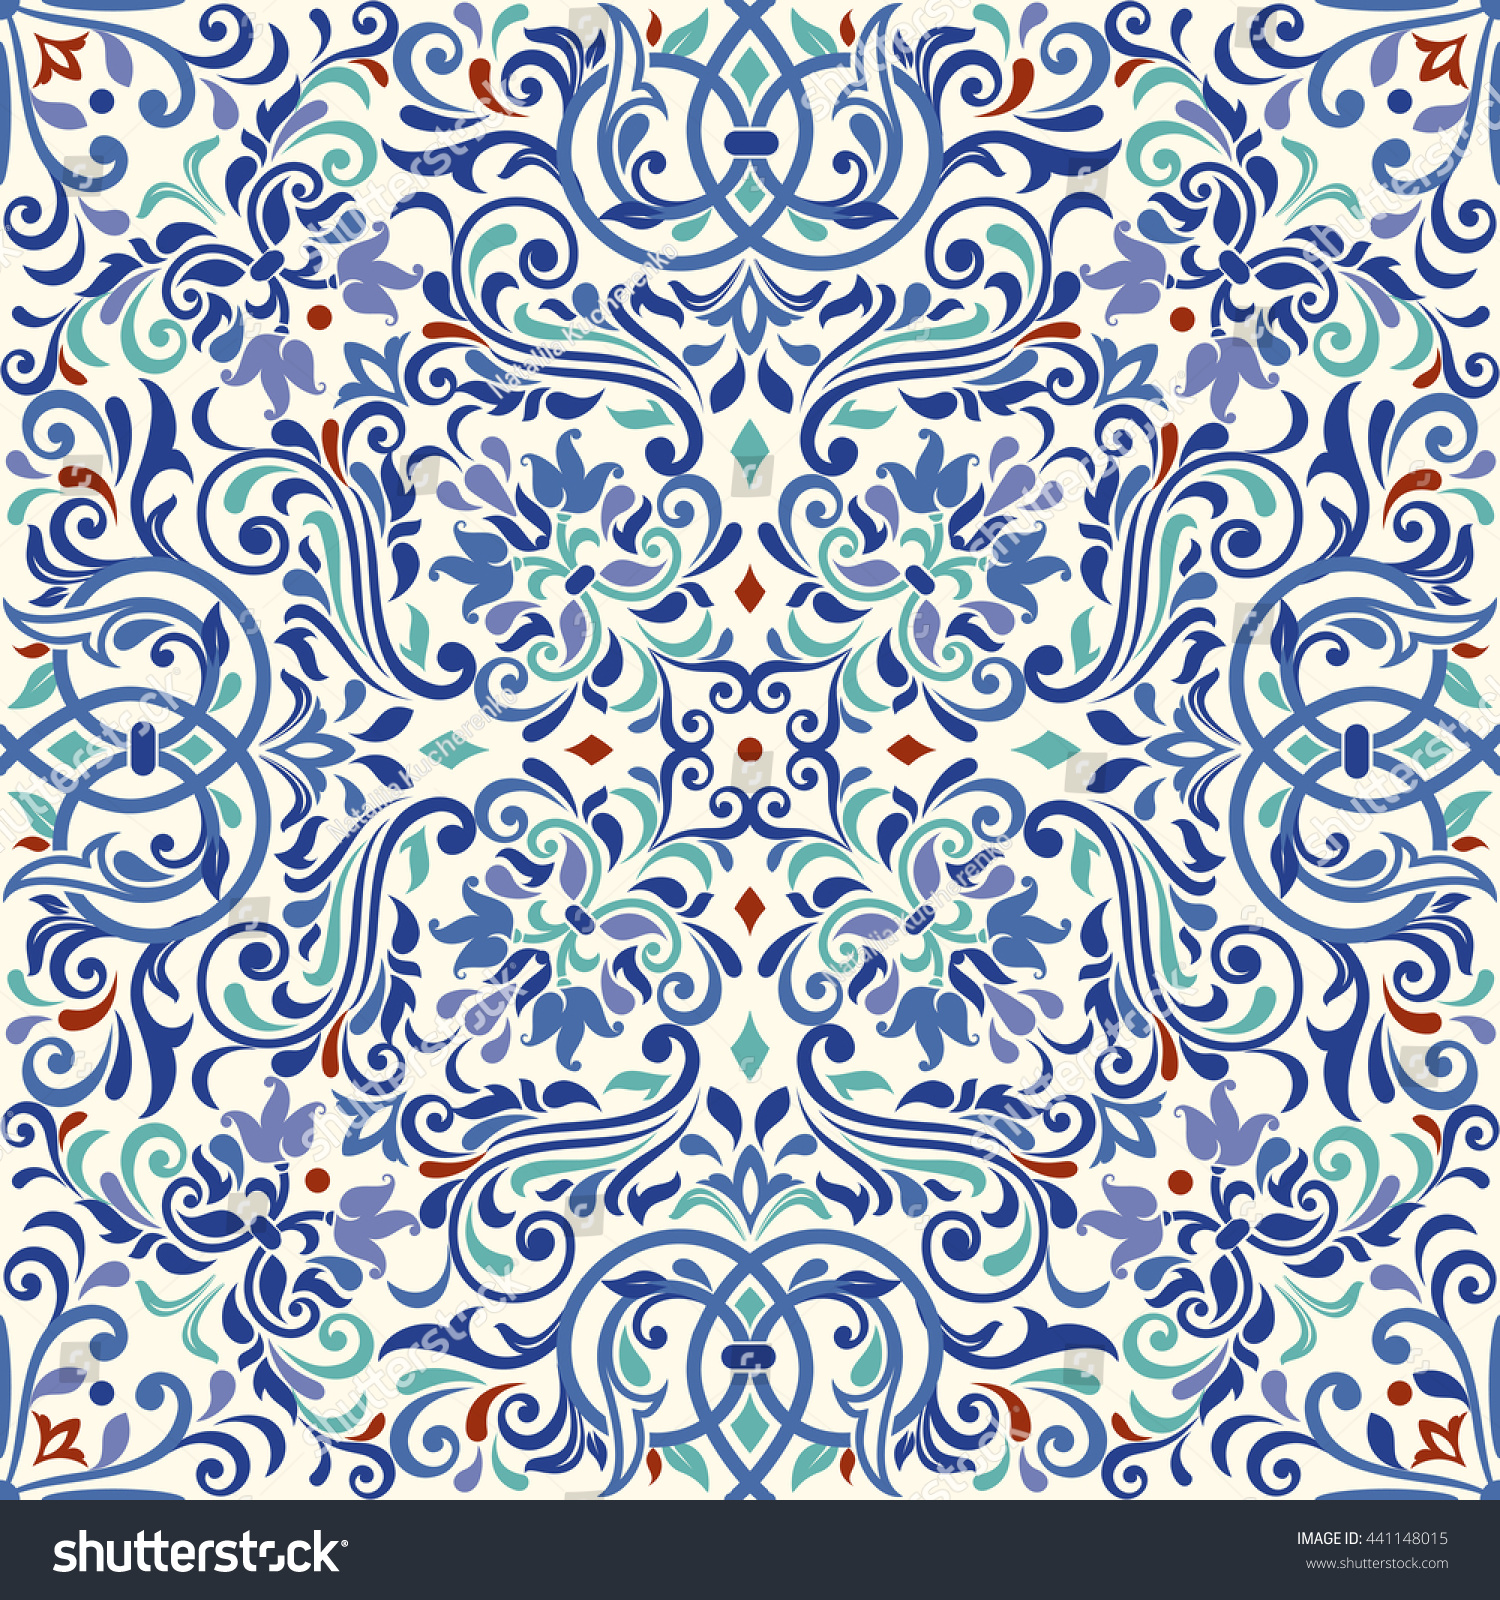 Turkish Design Wallpaper : Seamless turkish colorful pattern endless stock